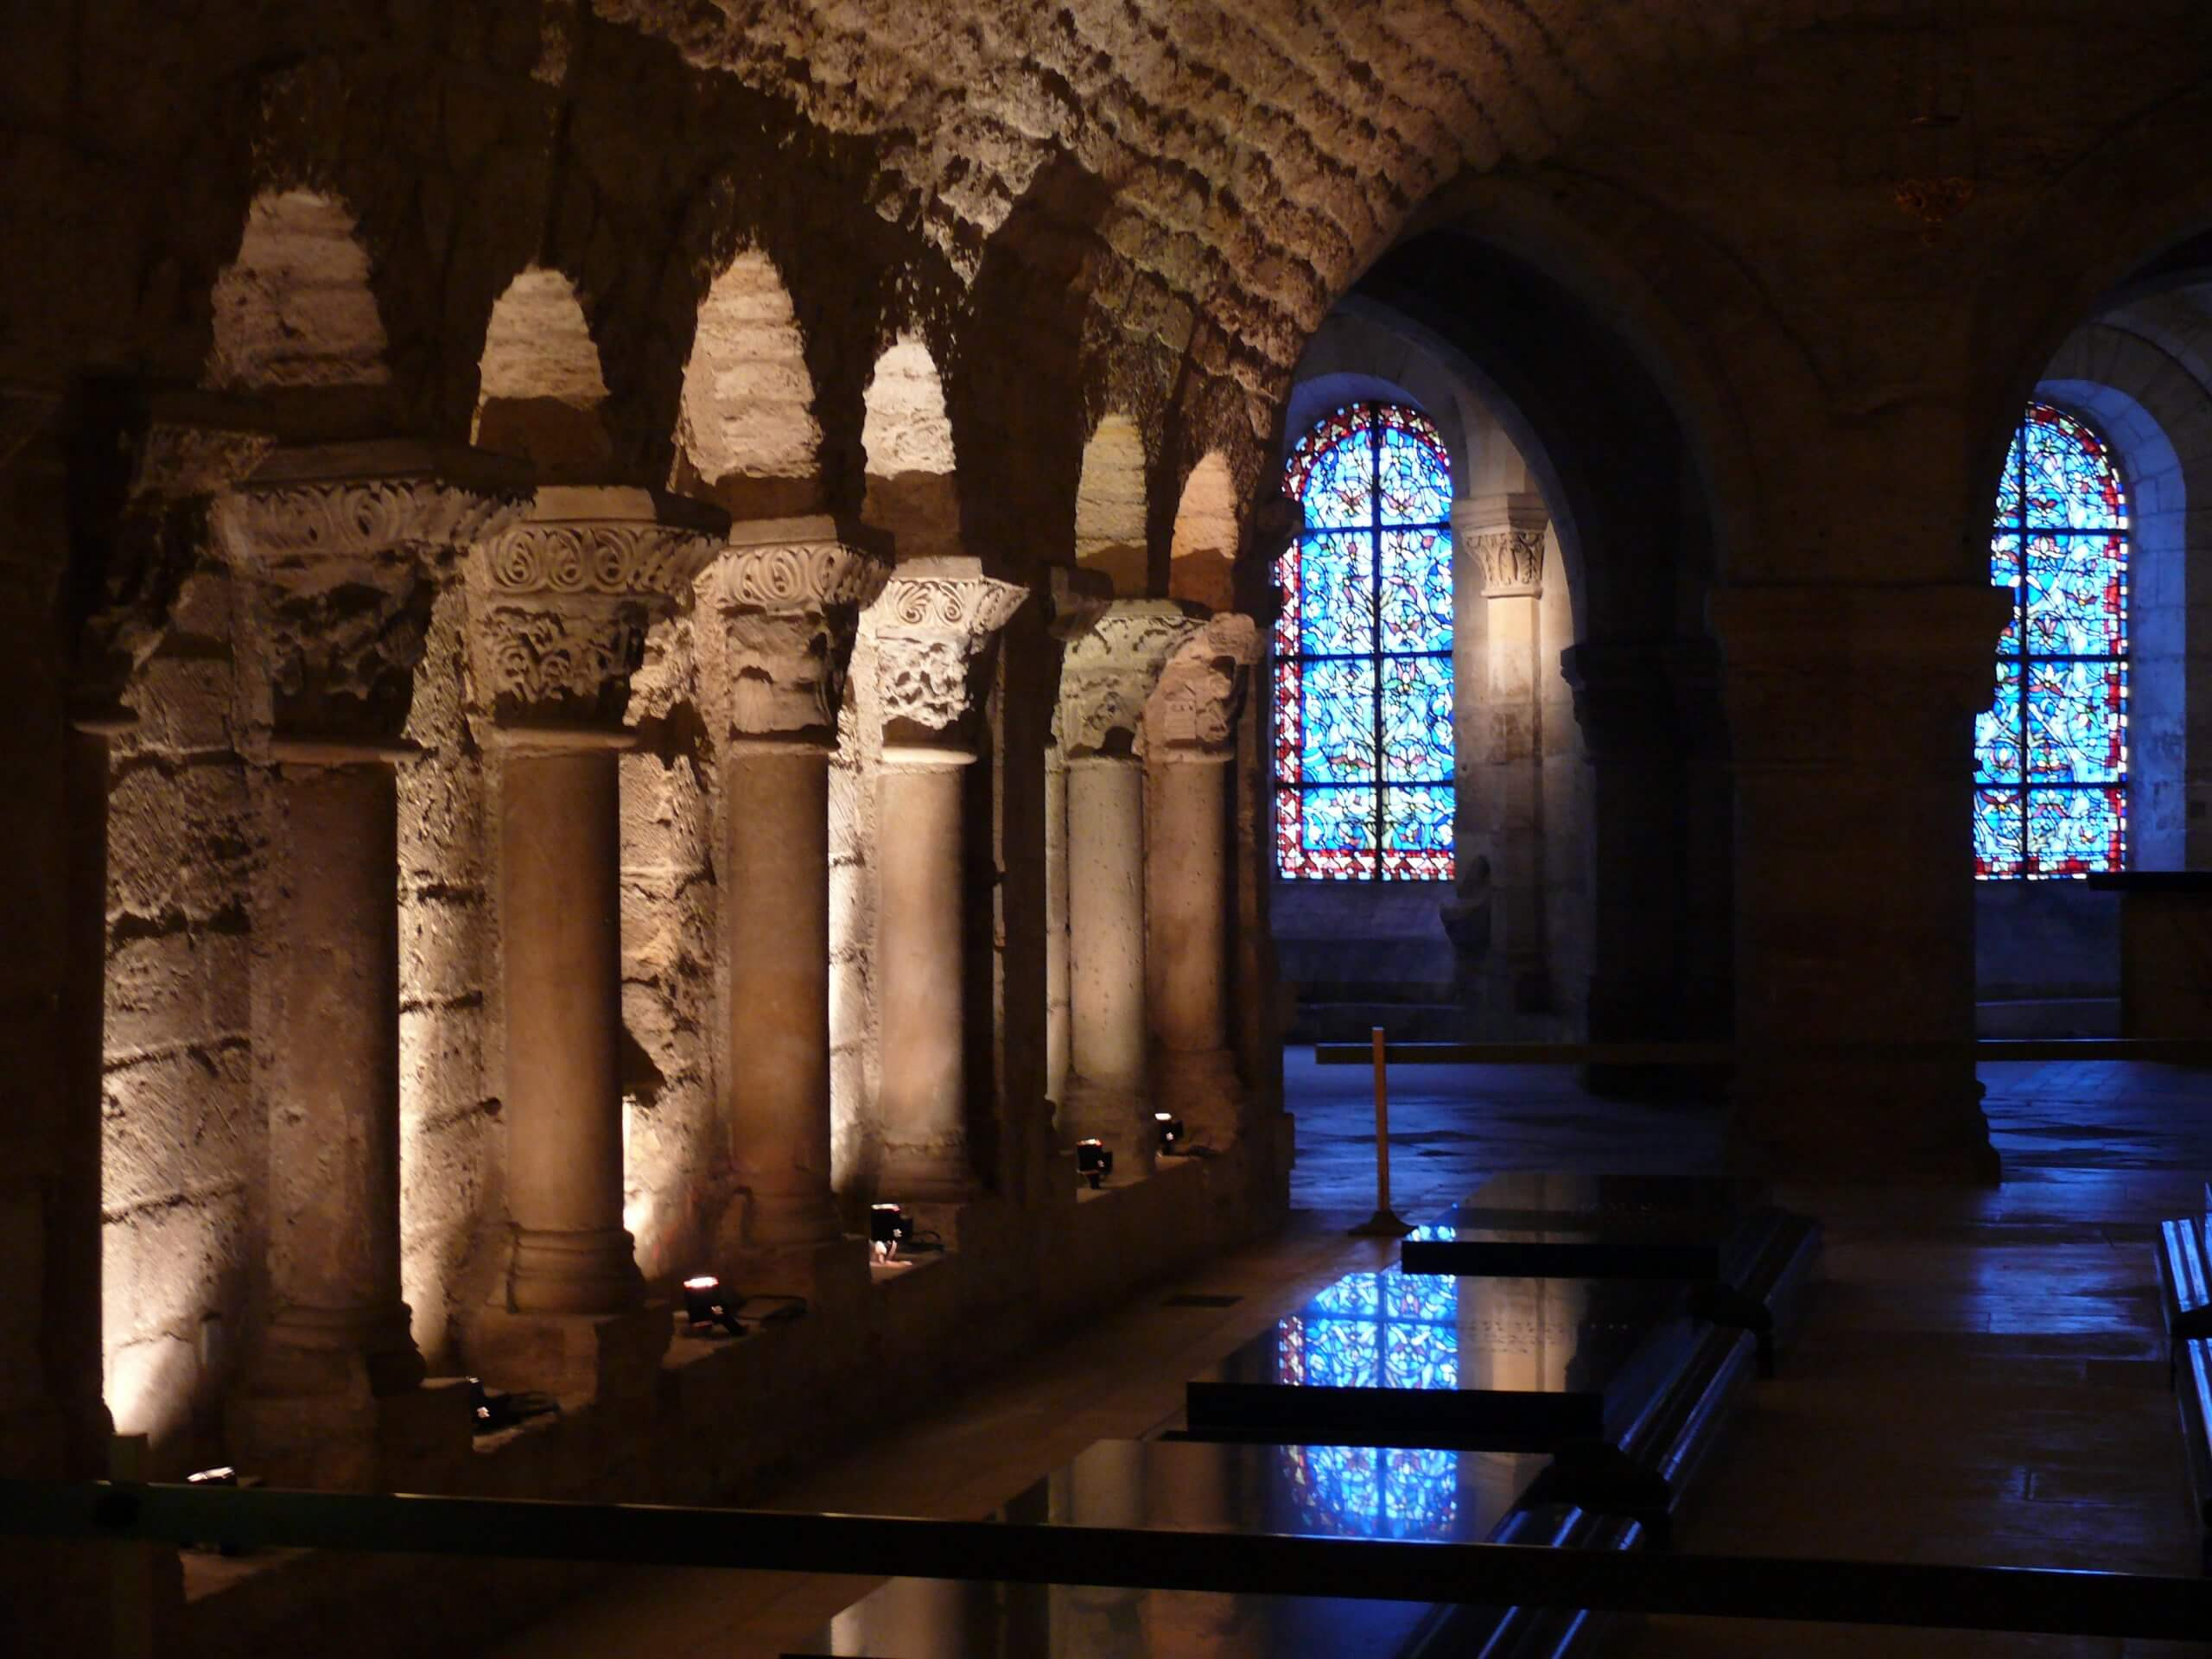 Tombs of Basilica of Saint-Denis